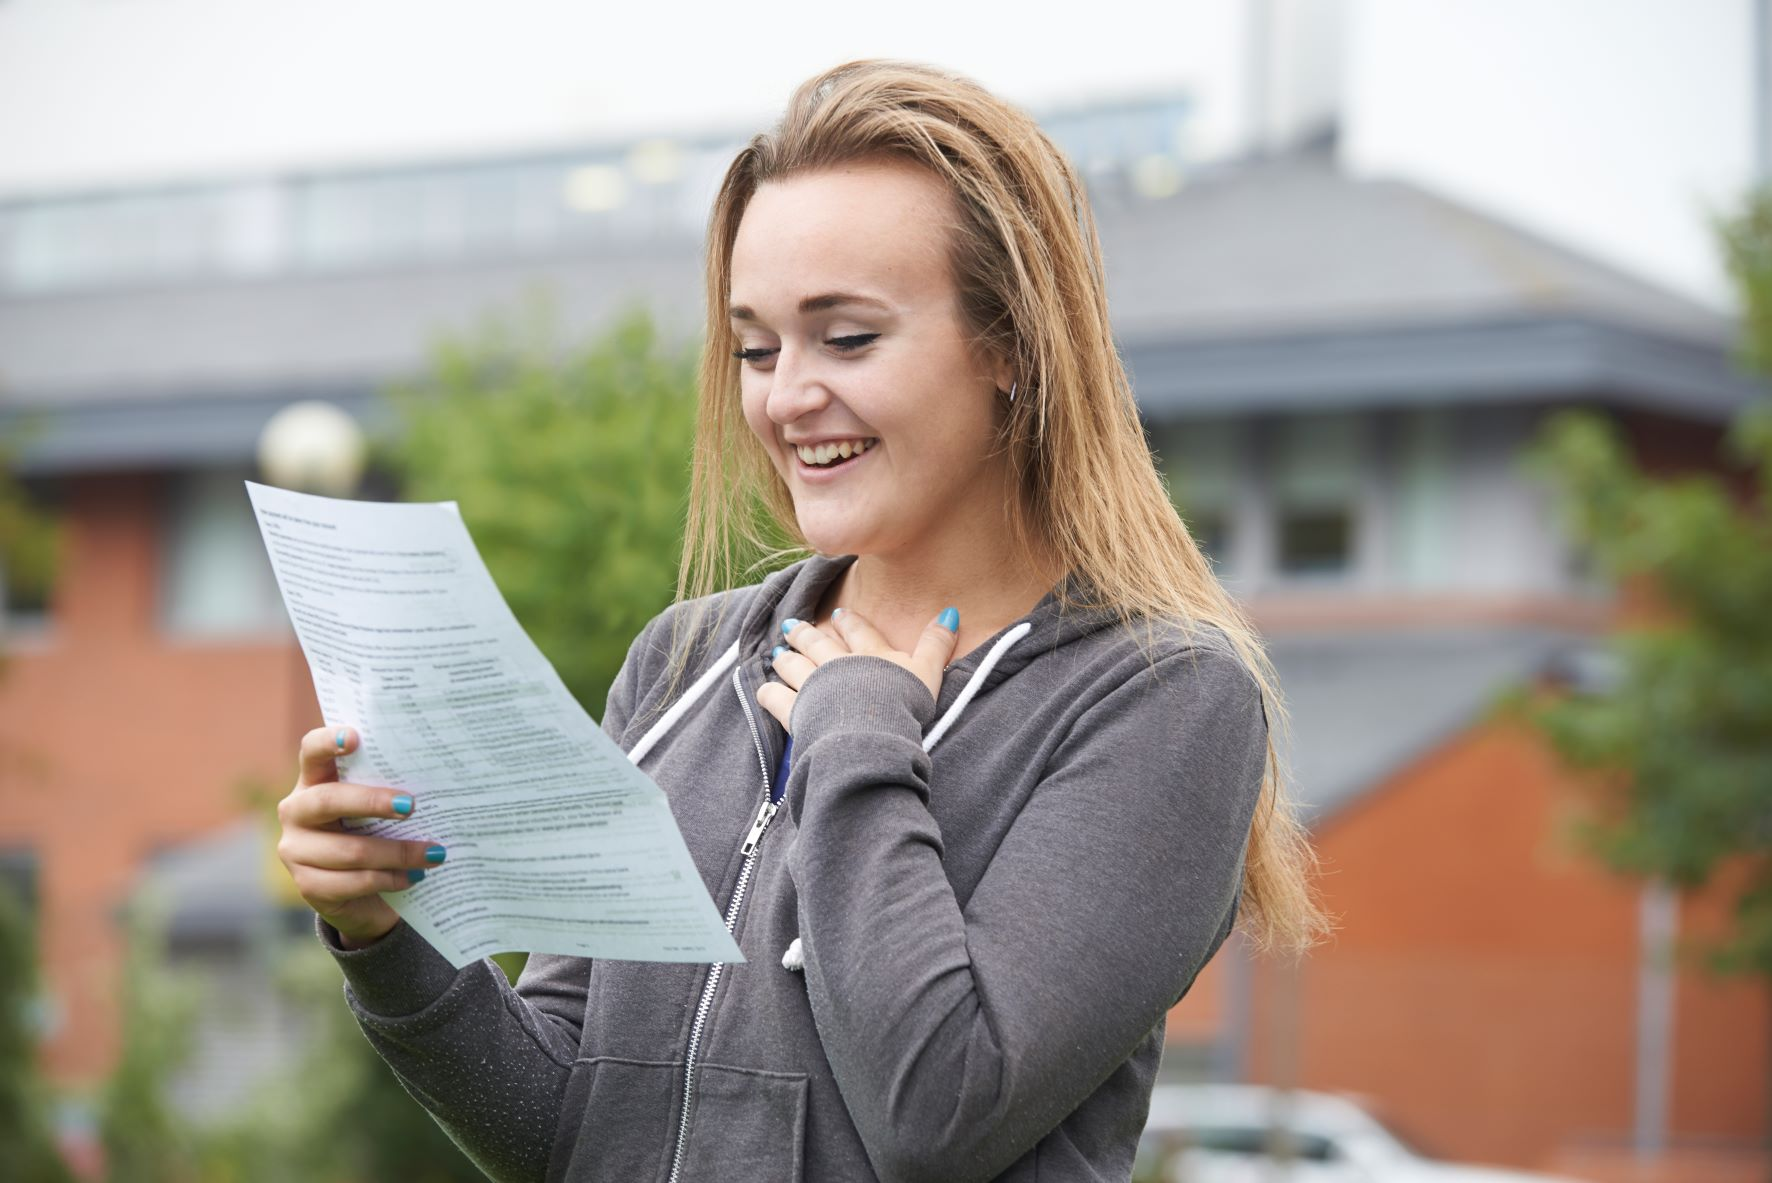 Blog: Top tips for results week